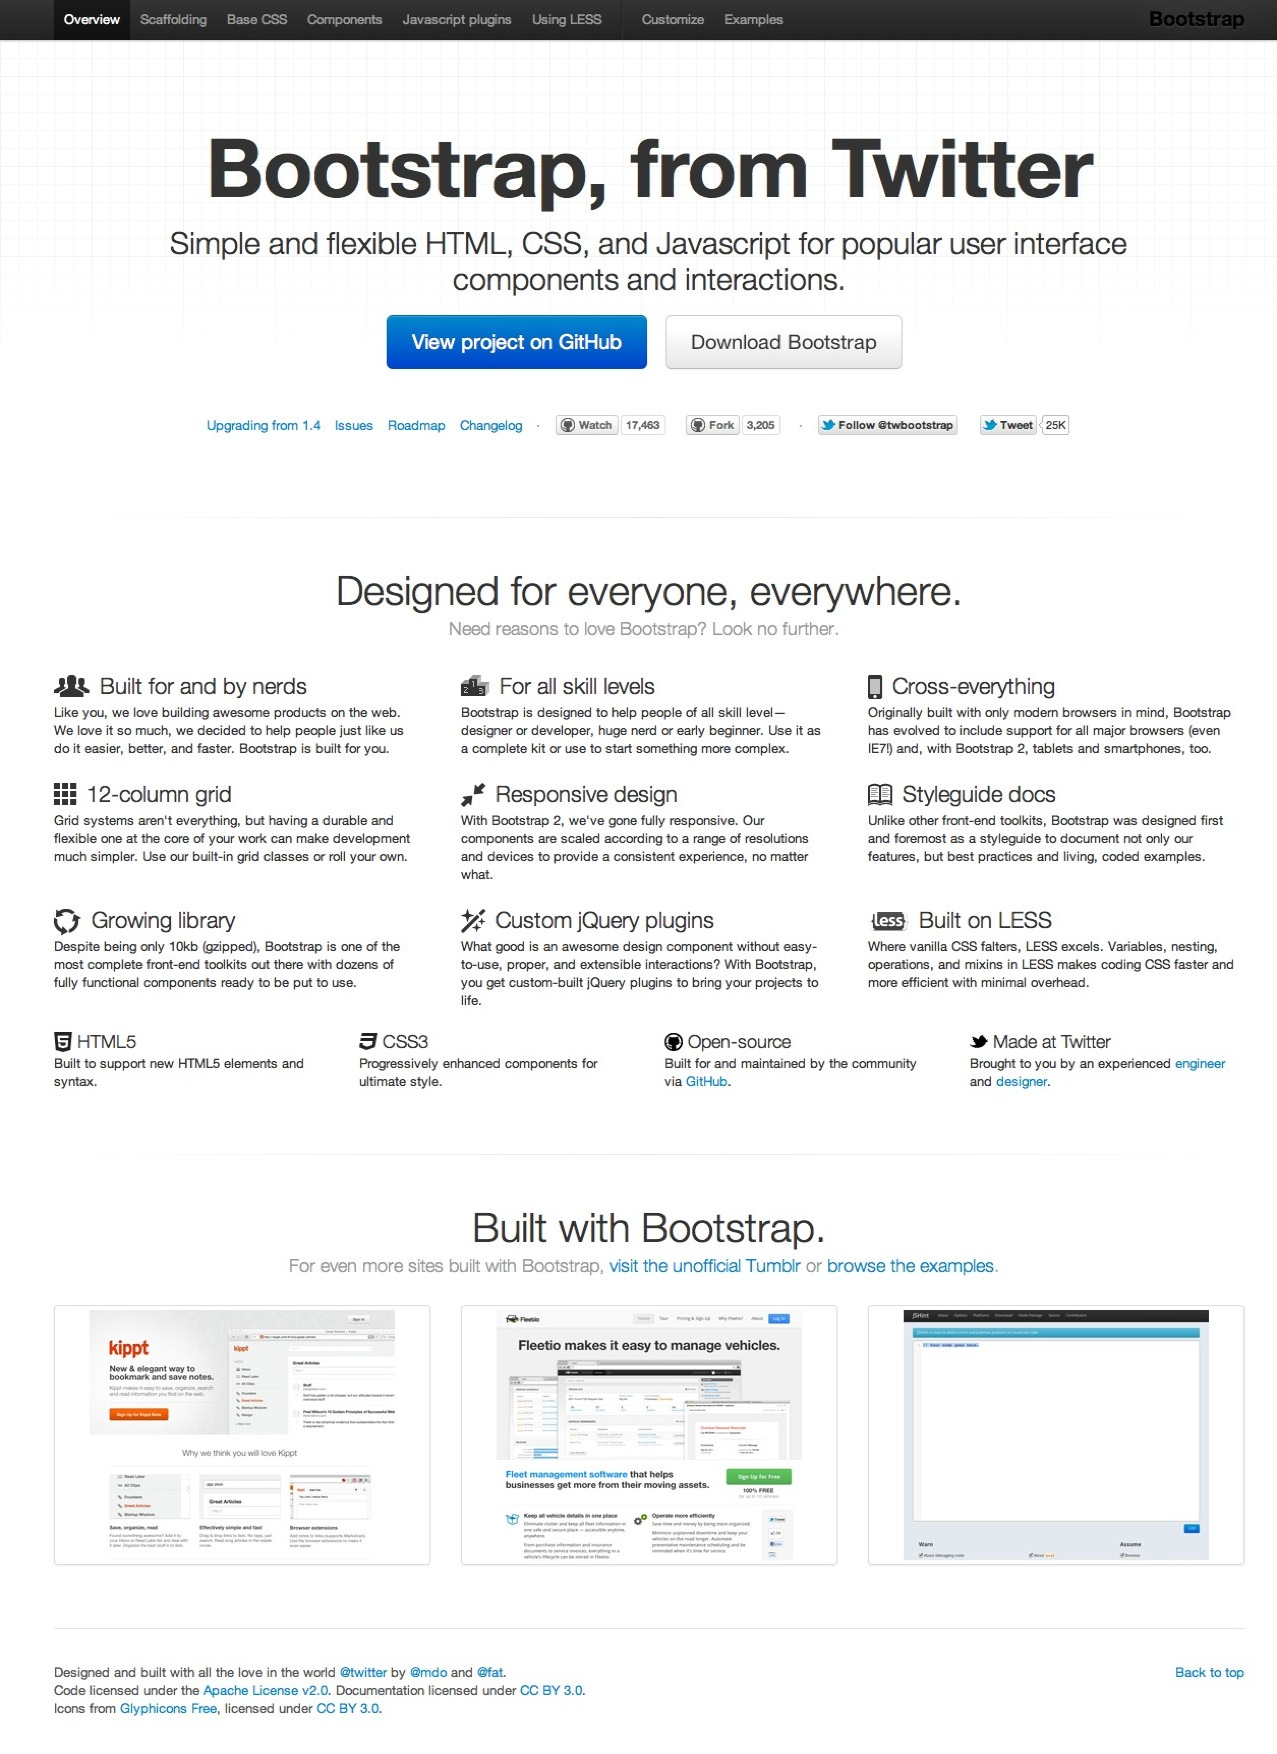 bootstrap twitter homepage